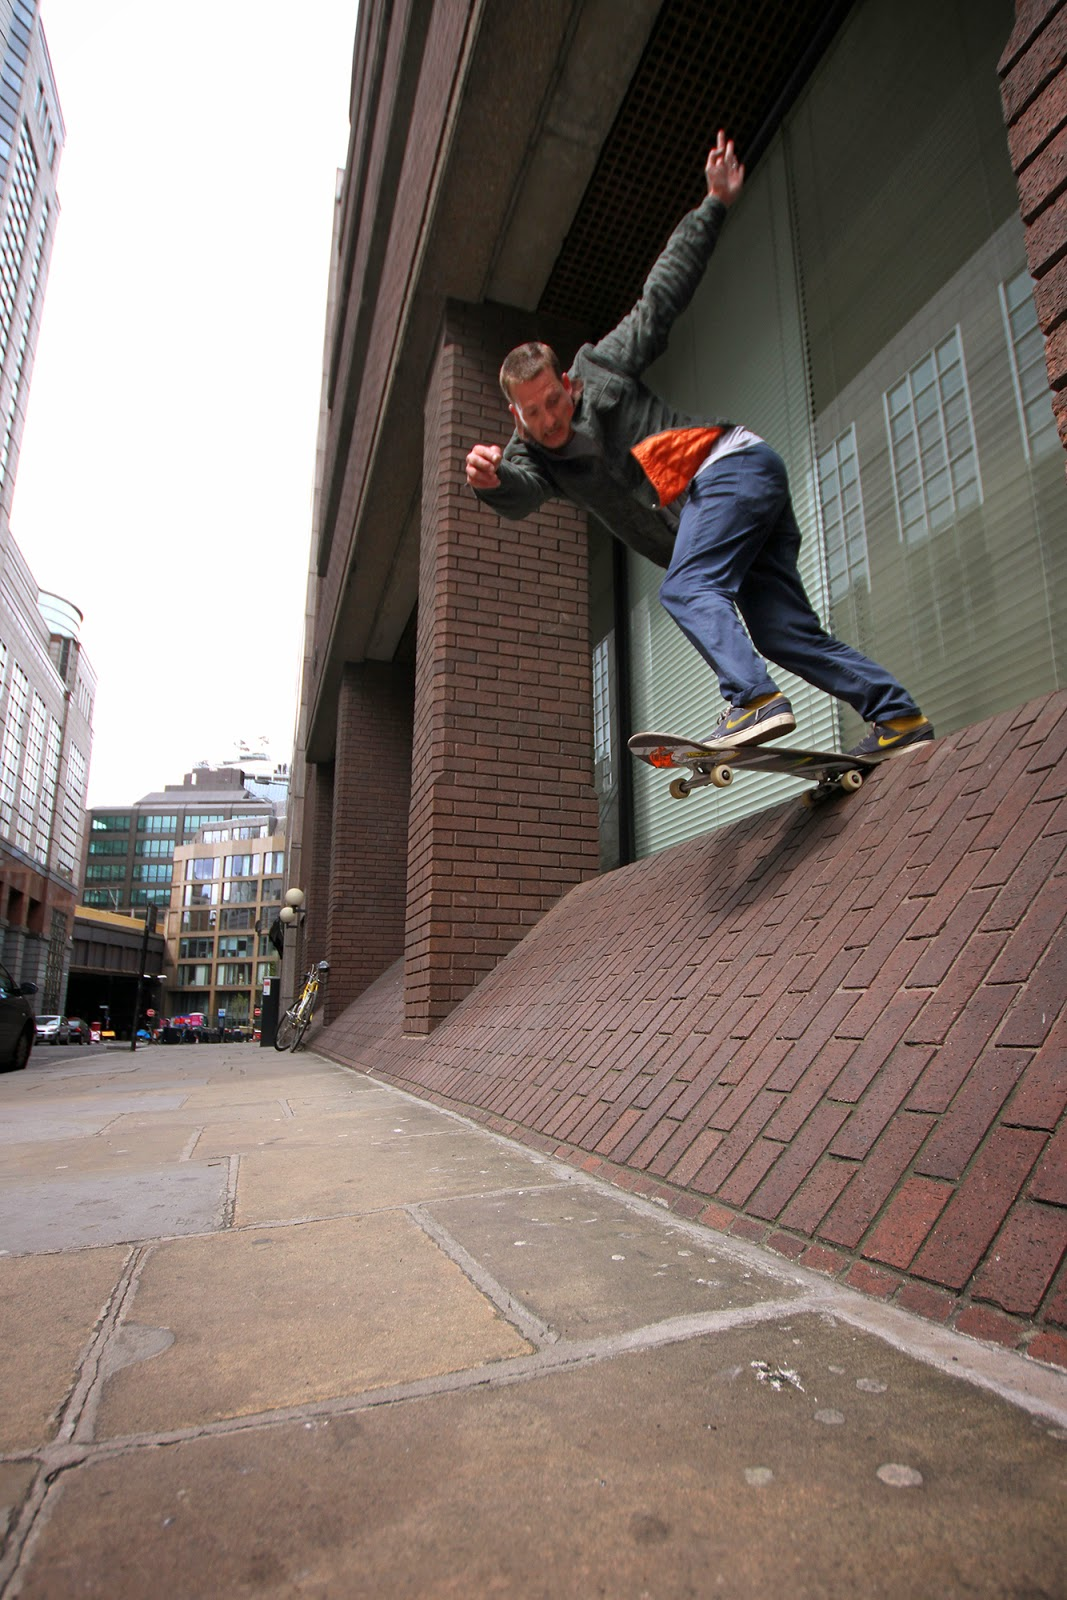 old skateboarder jamie harrison back tail london street skating copyright 2013 scott madill